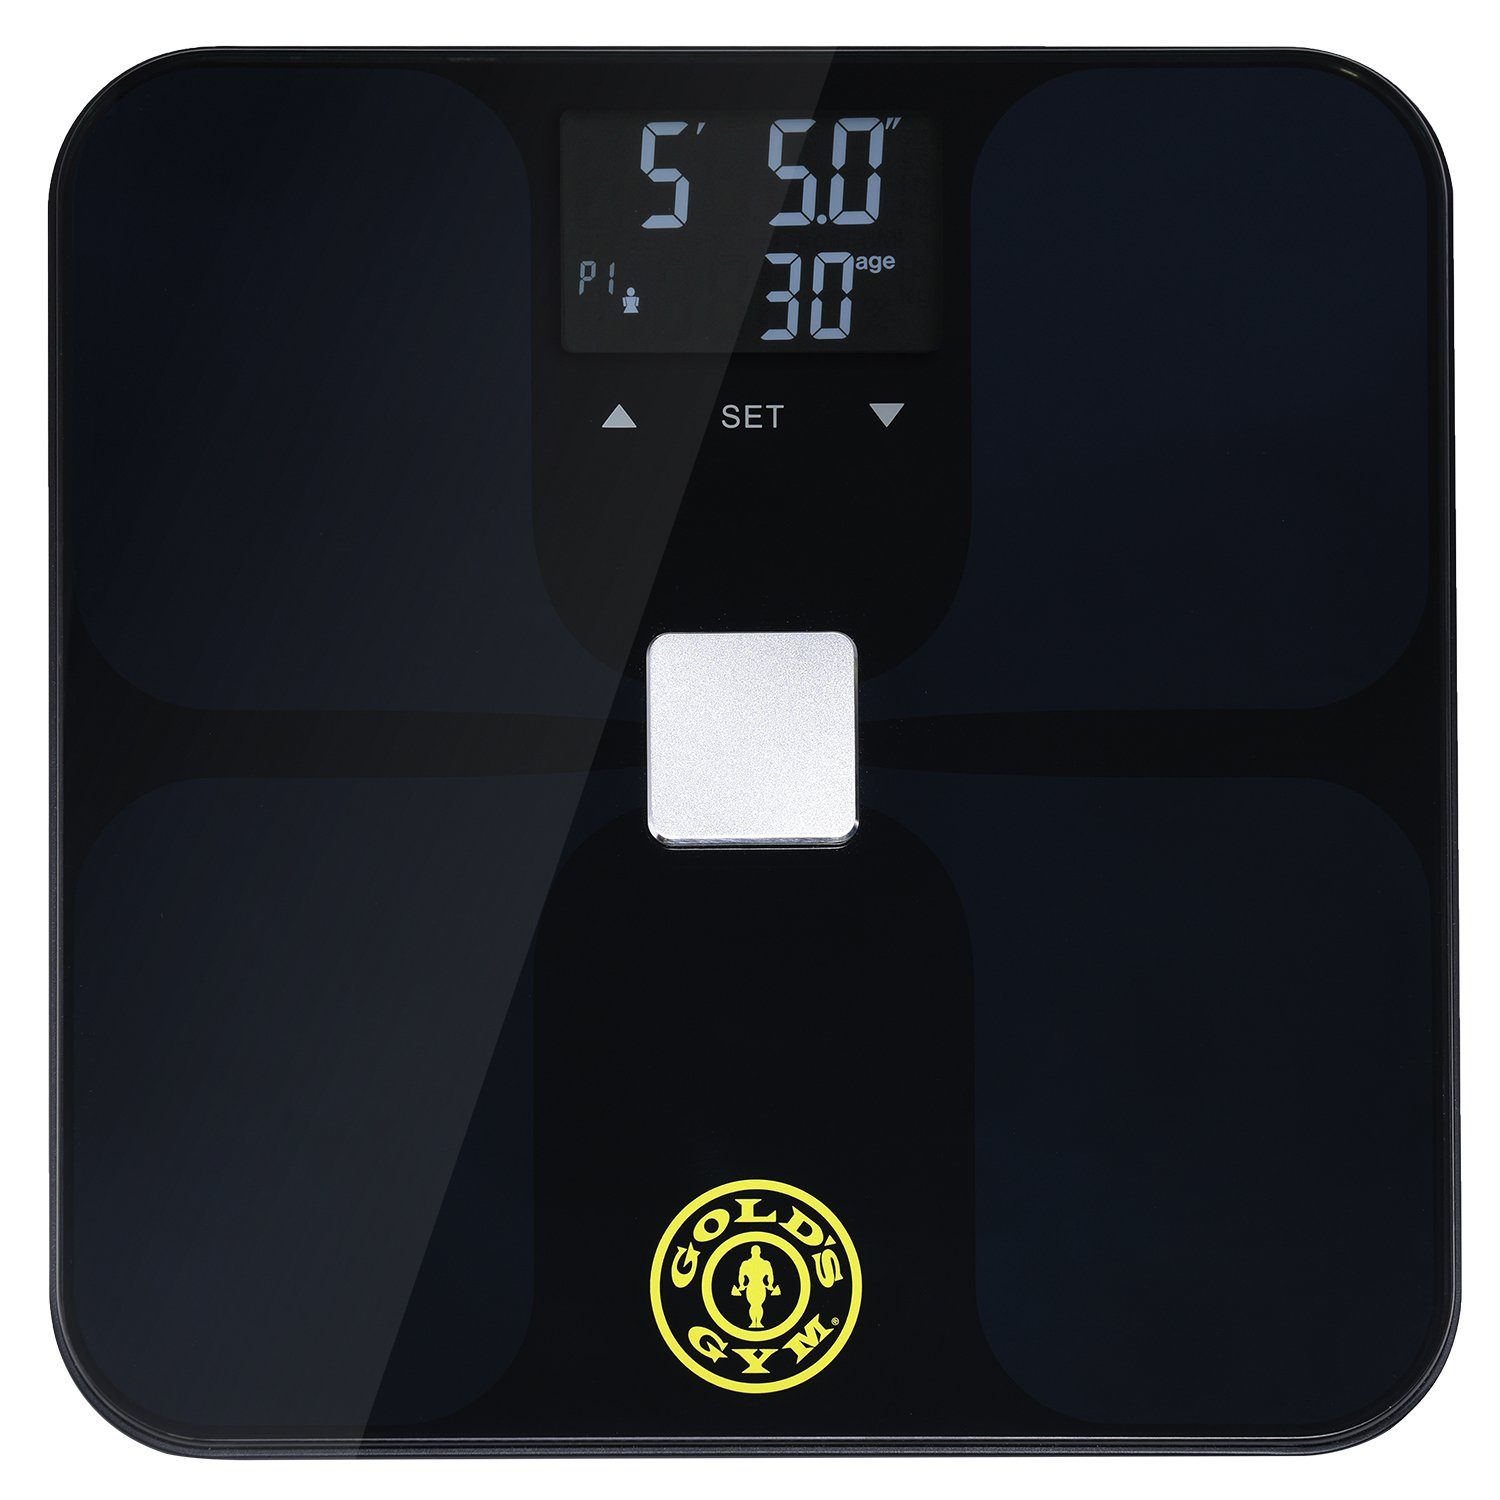 Gold's Gym Smart Biometric Digital Body Composition Fitness Bathroom Scale Measures Weight, BMI, Body Fat, Water and Muscle Mass, Kcal/BMR, Bone Mass - Auto Memory For Up to 9 Users - Black